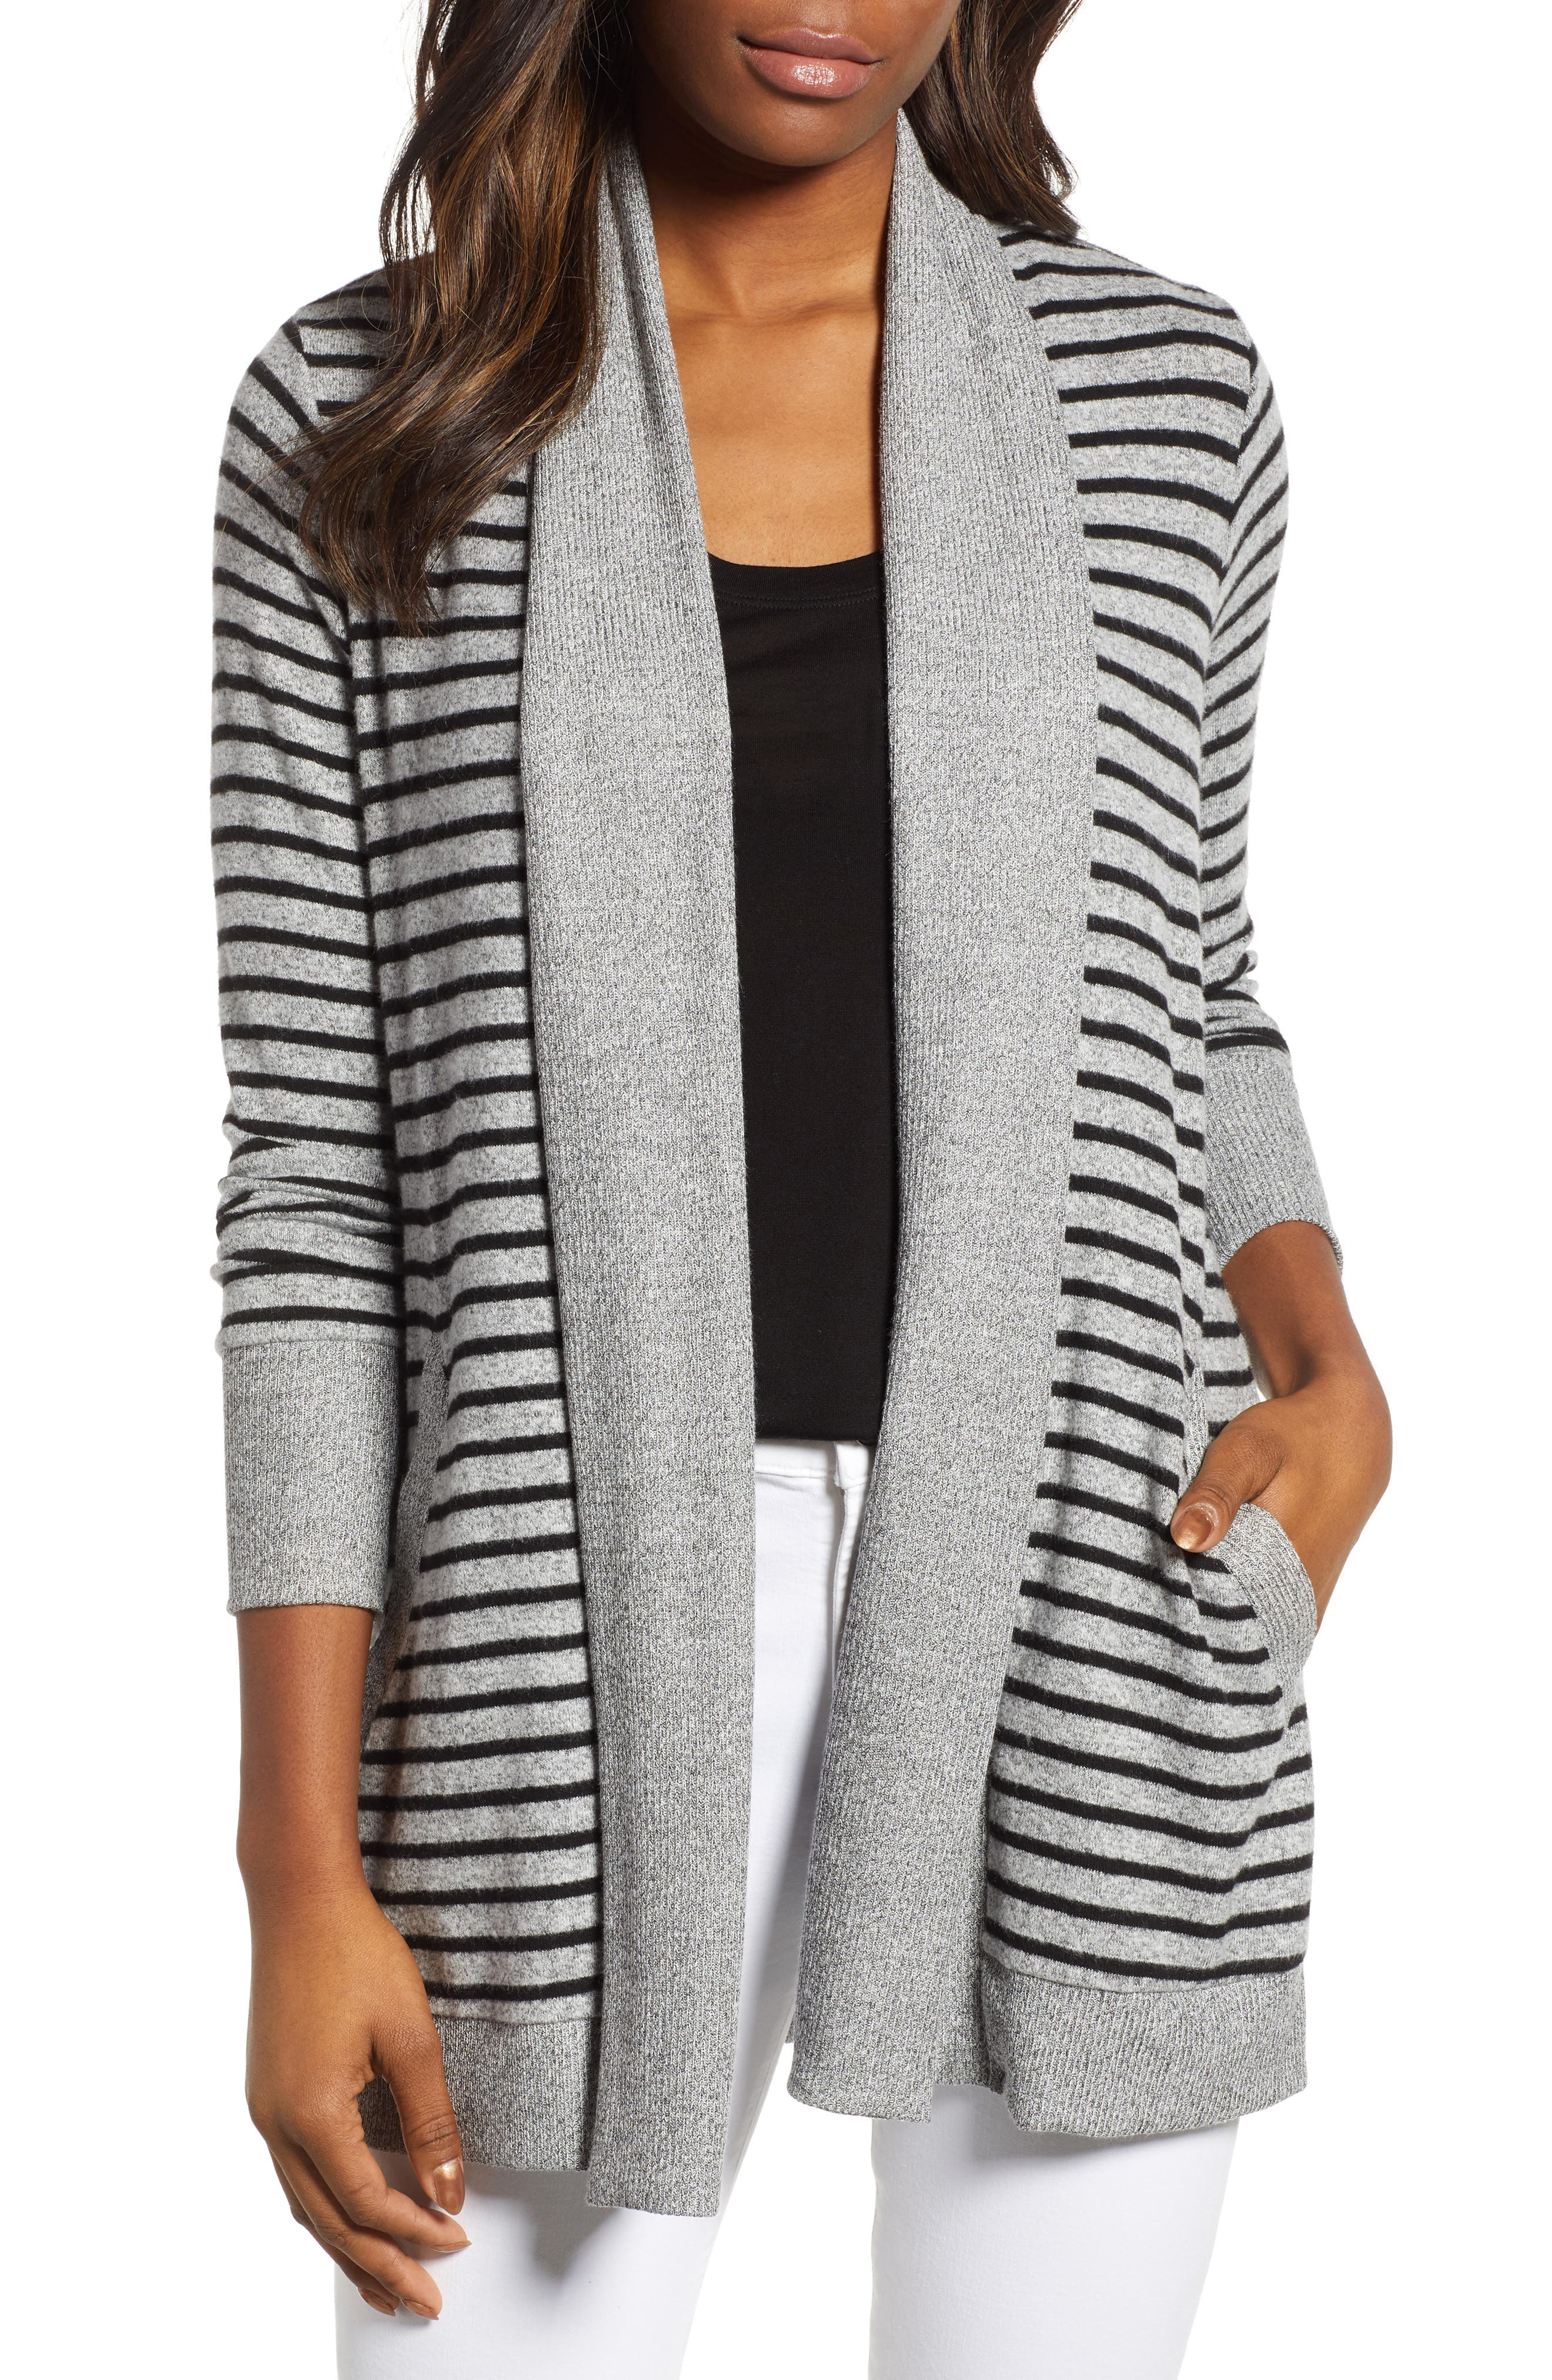 GIBSON Cozy Ribbed Cardigan, Main, color, GREY/ BLACK STRIPE